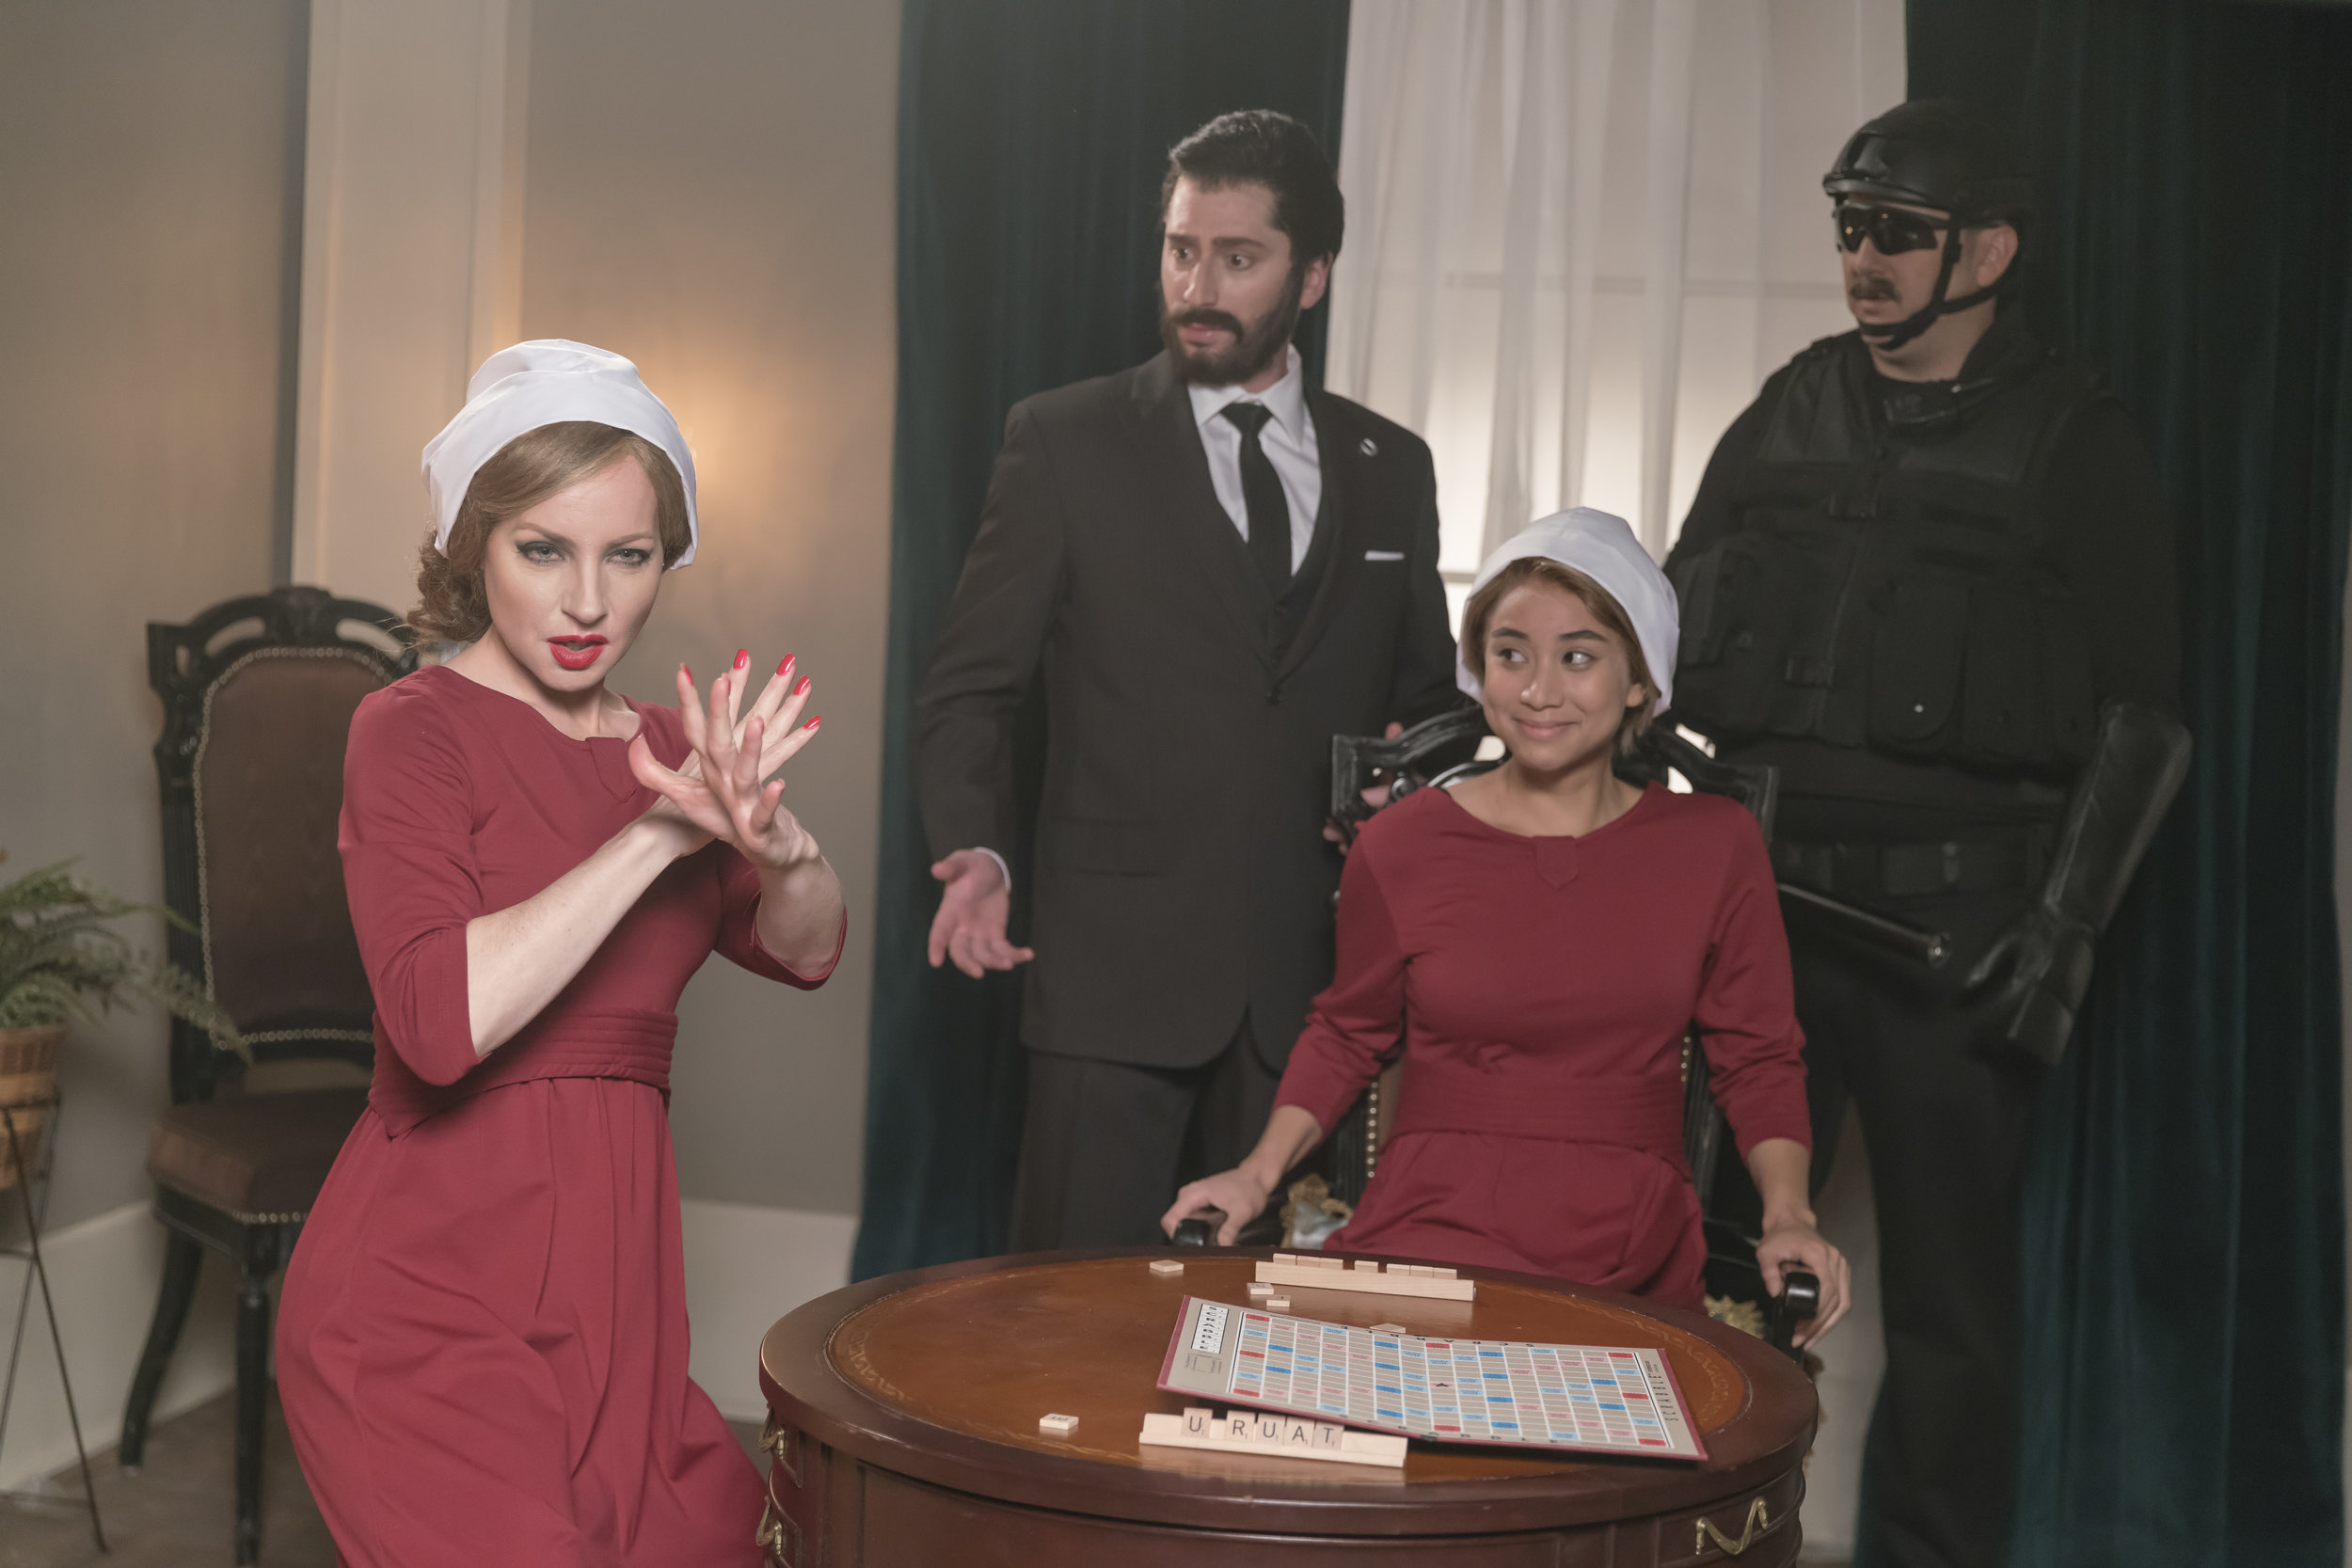 Look what you made her do! Taylor Swift (Jessica Holmes, left) joins the cast of The Handmaid's Tale (with Chris Wilson, Isabel Kanaan, and Craig Lauzon).